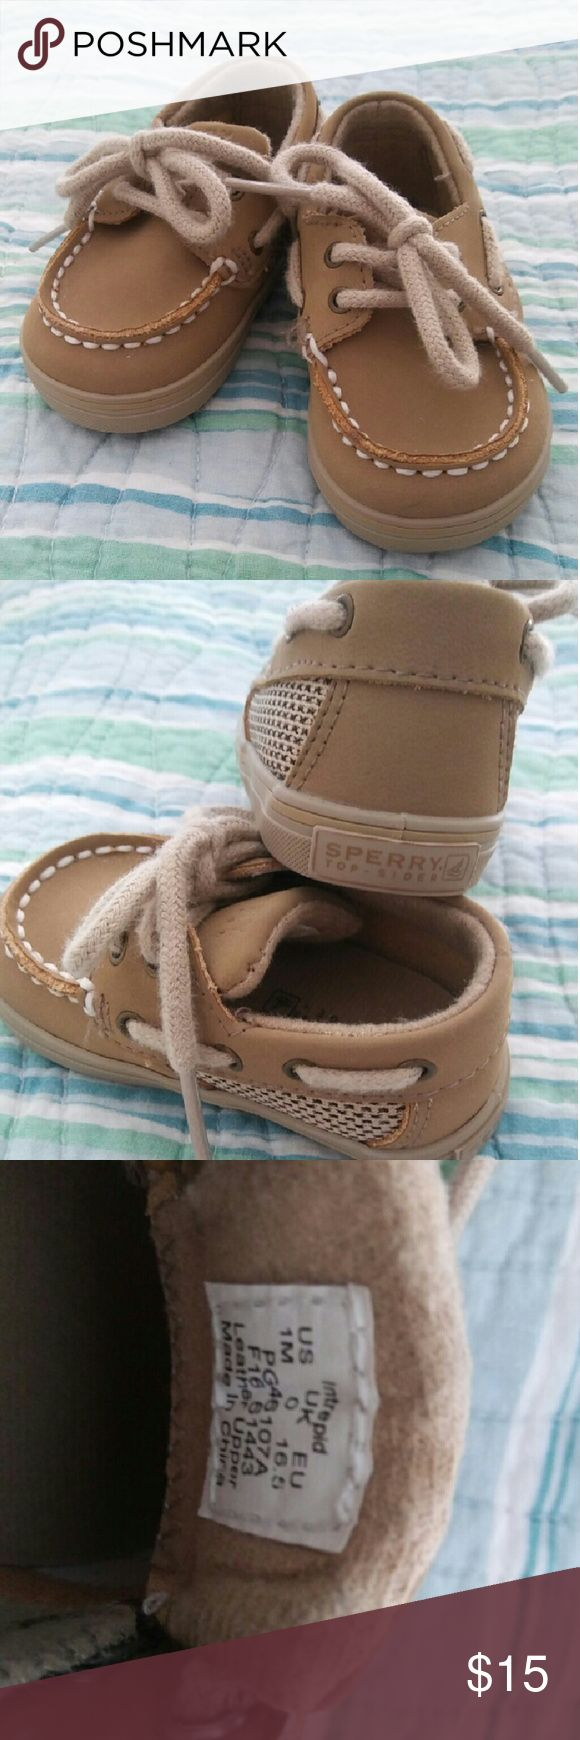 Baby Sperry shoes Adorable baby lace up Sperry shoes Sperry Shoes Baby & Walker